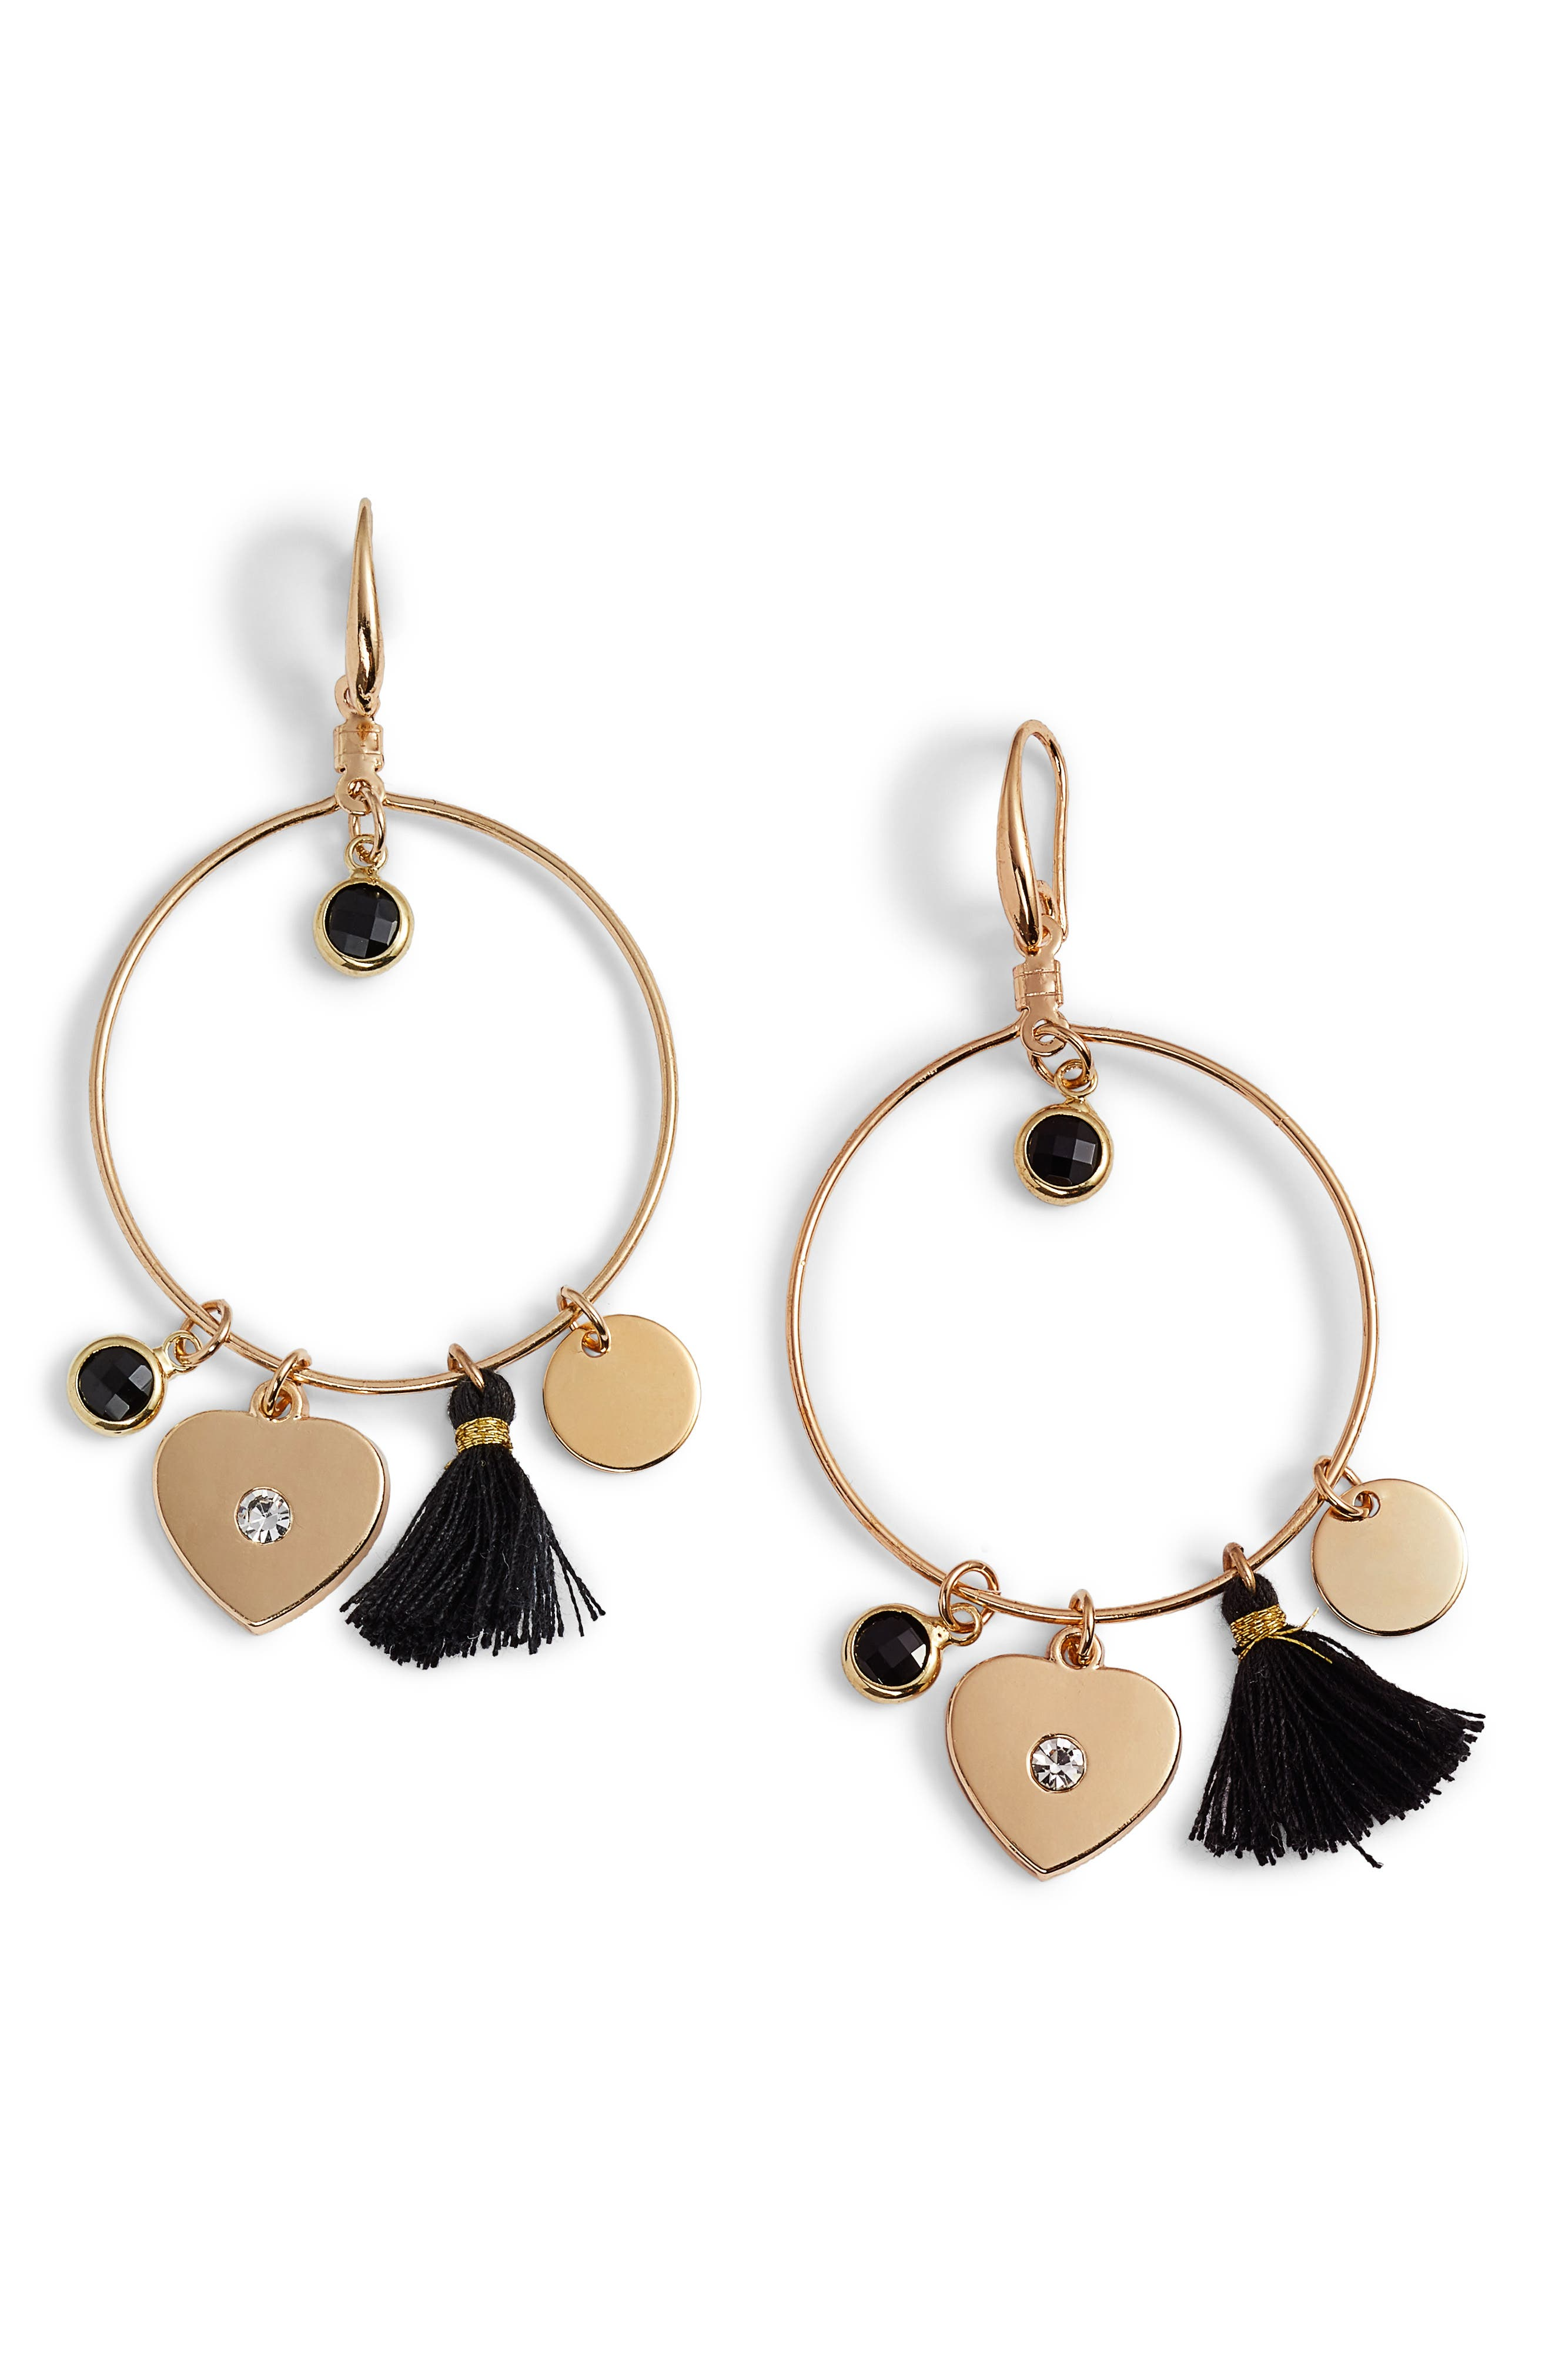 Samantha Tassel & Charm Hoop Earrings,                             Main thumbnail 1, color,